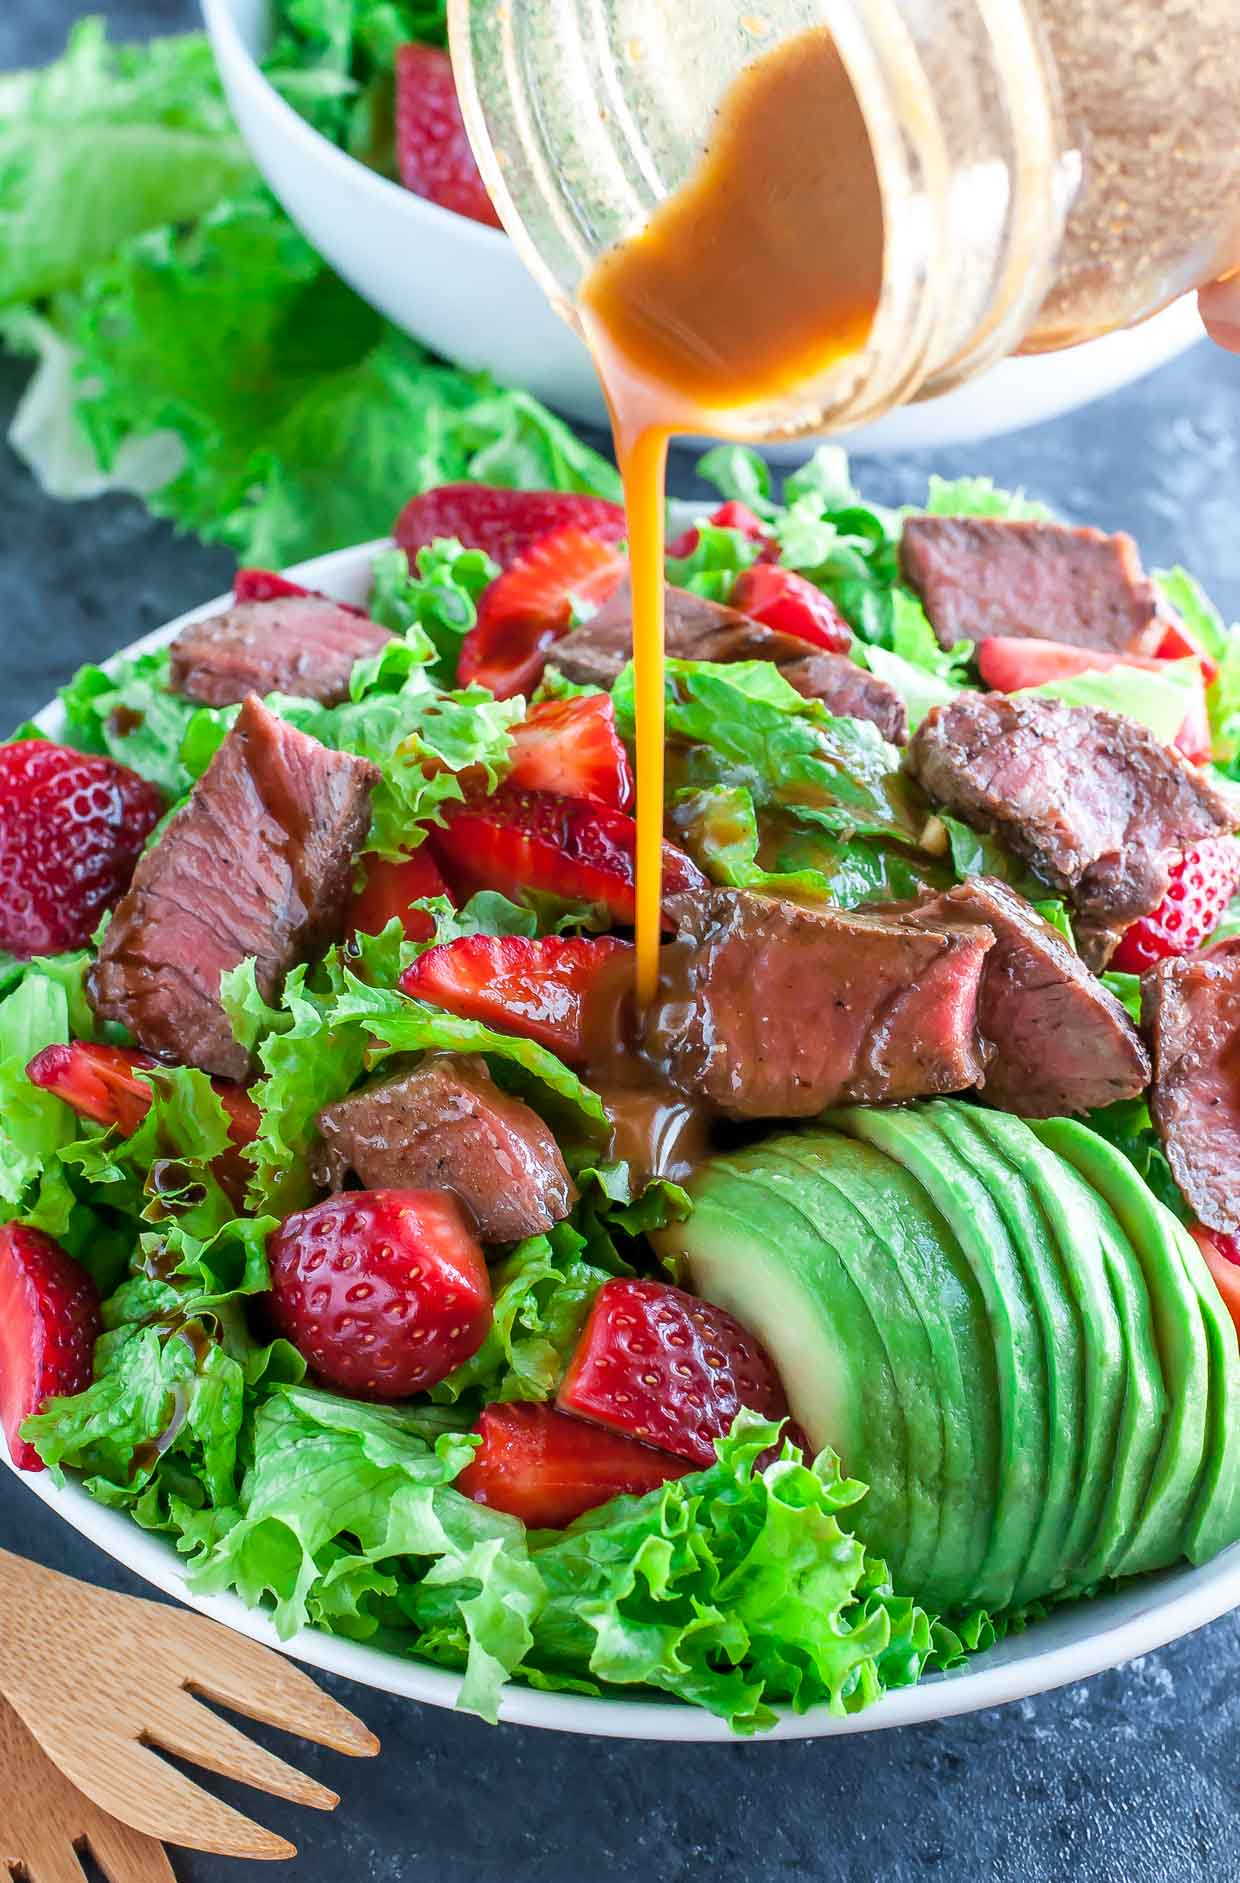 Ready in under 25 minutes, this Strawberry Steak Salad with Homemade Balsamic Dressing is quick and easy enough for lunch or weeknight dinner! It's a little bit sweet, a little bit savory, and a whole lot of deliciousness in every bite!